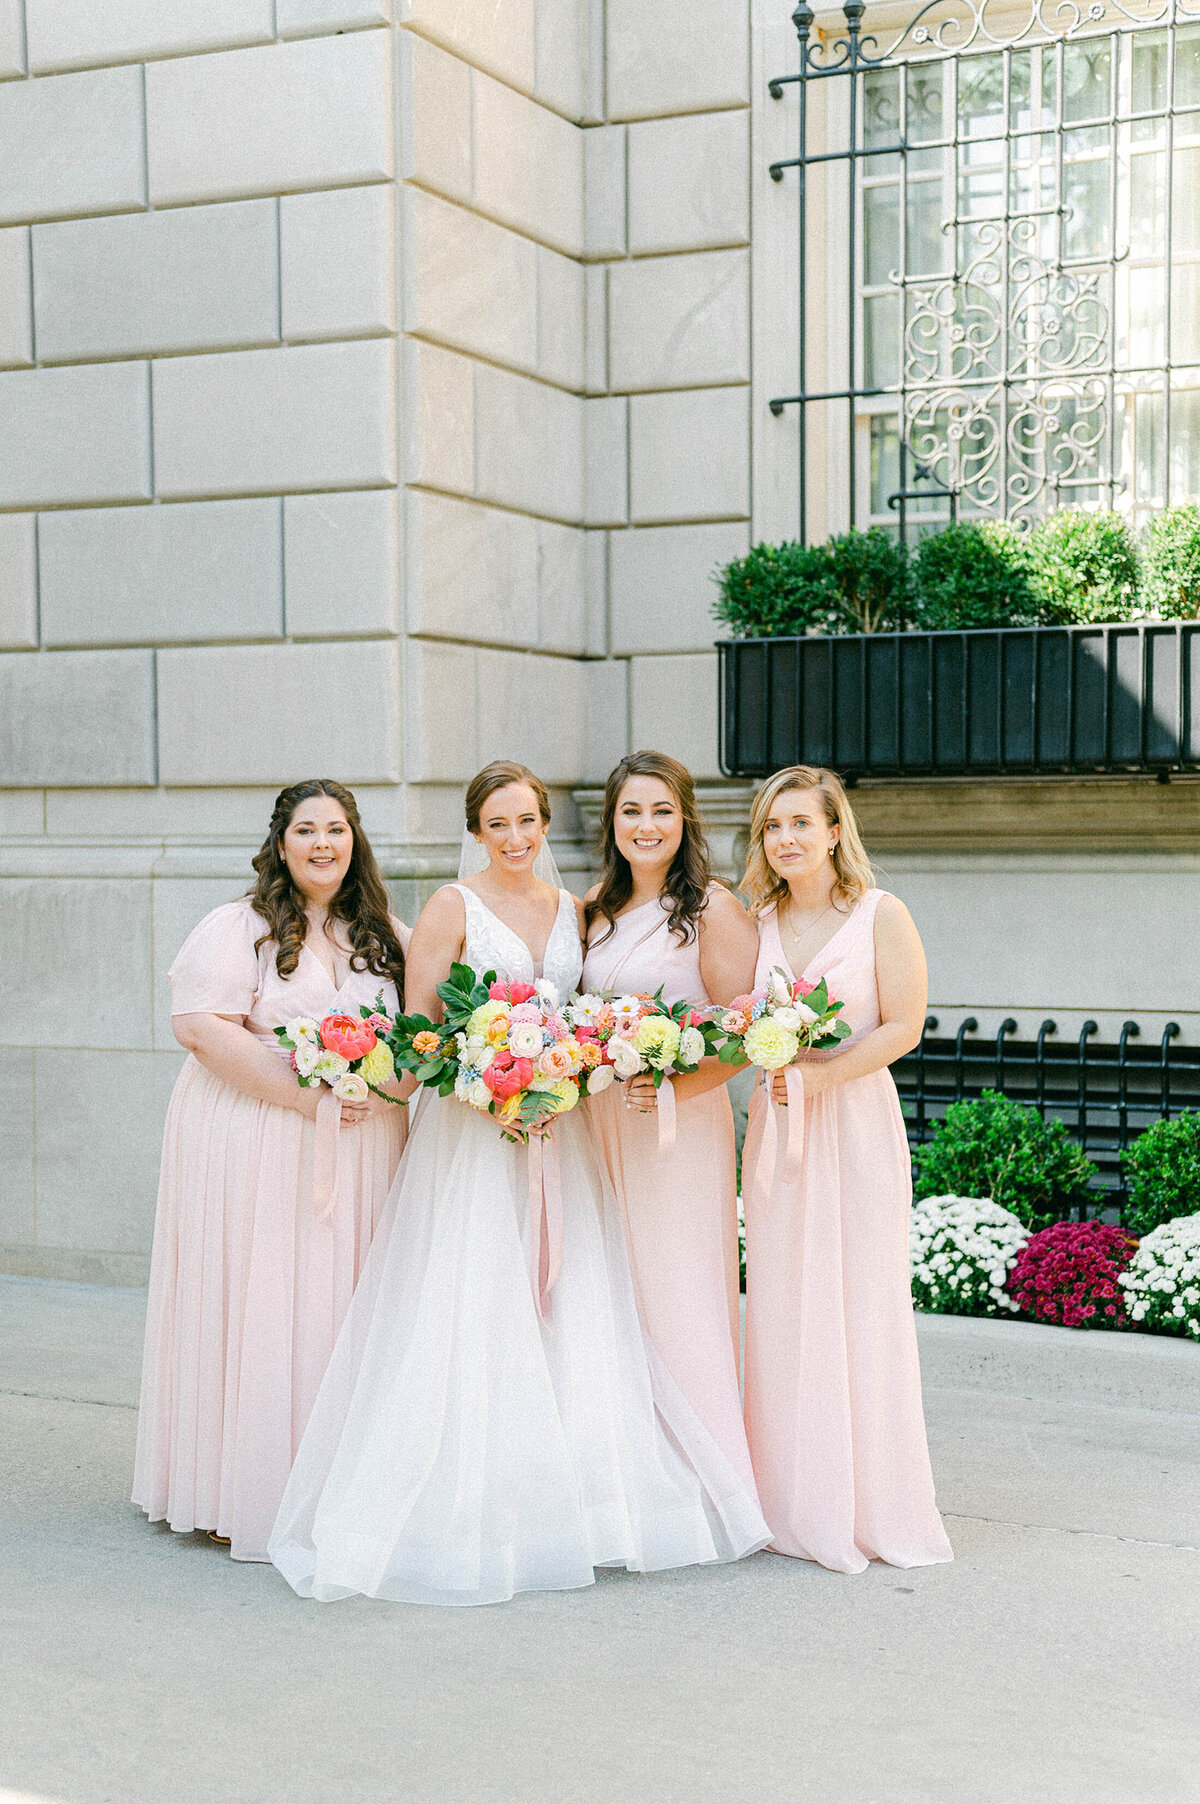 Jennifer Bosak Photography - DC Area Wedding Photography - DC, Virginia, Maryland - Jeanna + Michael - Decatur House Wedding - 2